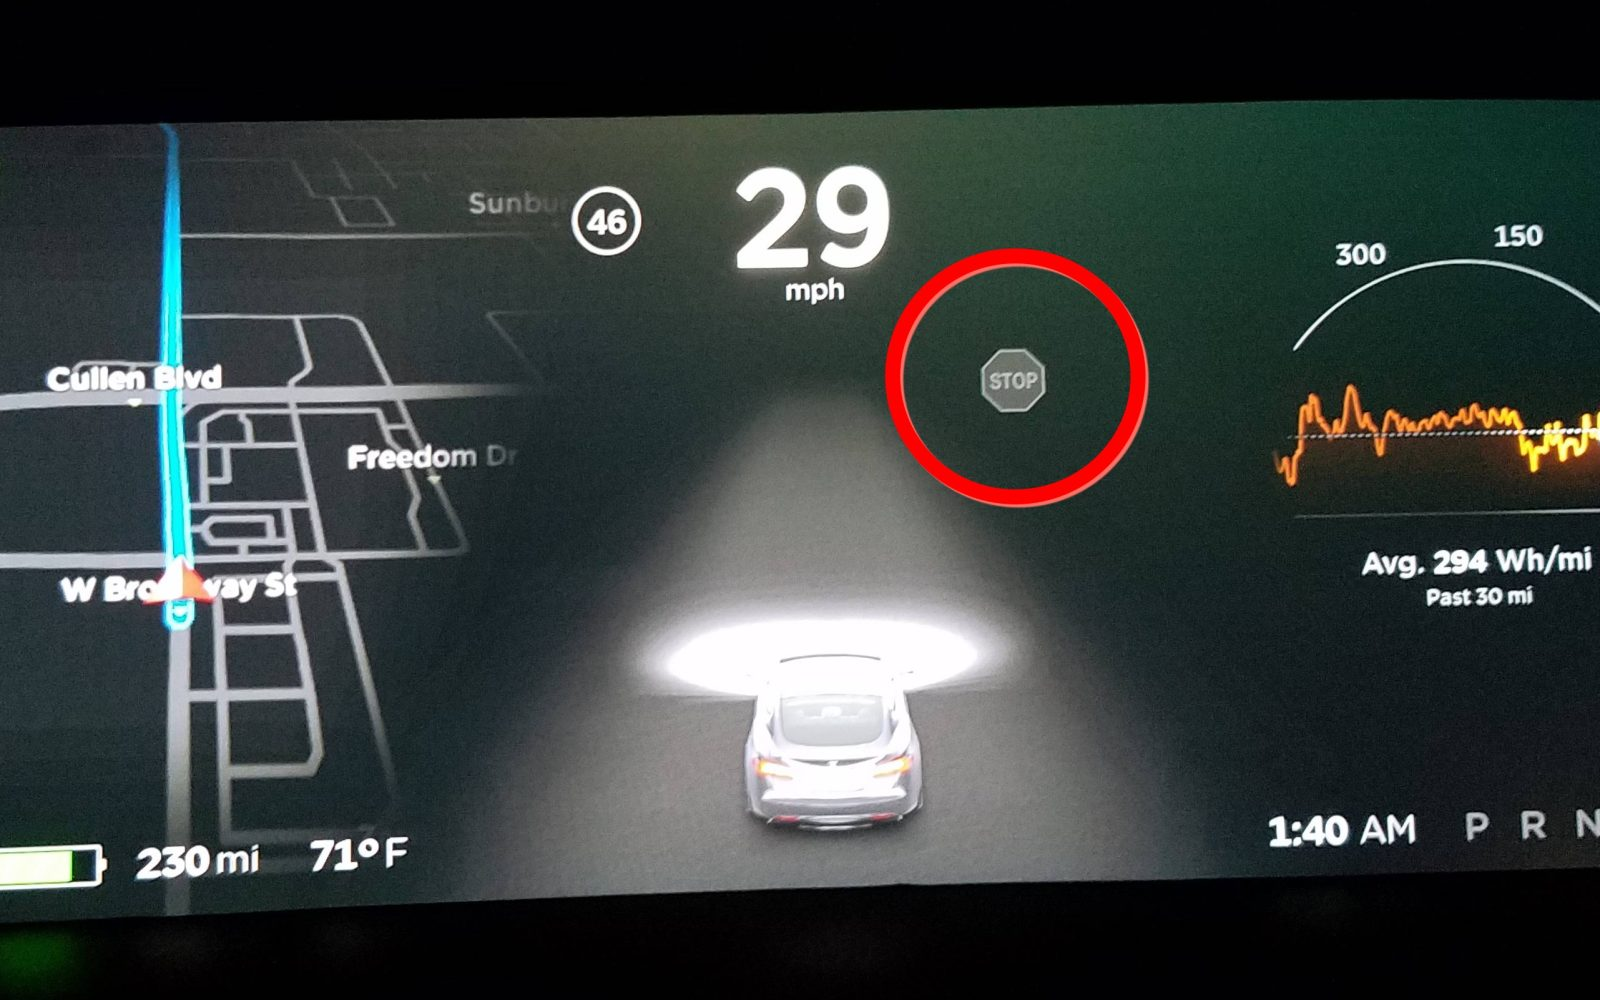 Teslas New Autopilot Update Detected And Displayed Stop Signs But Tesla Motor Design Diagram Pics It Didnt Act On Them